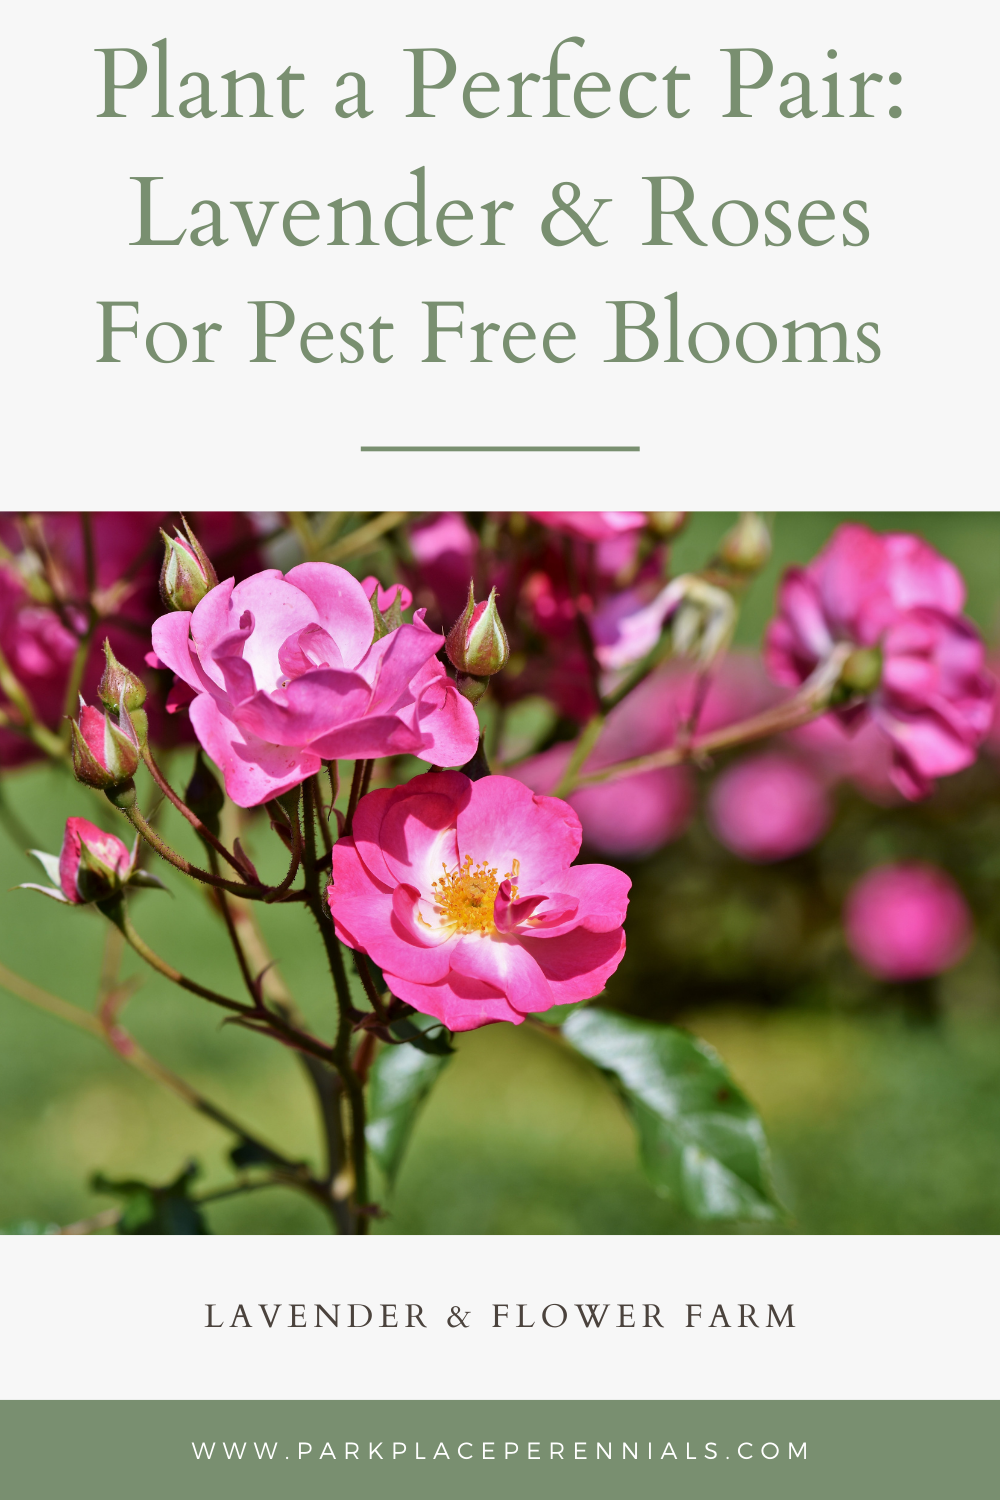 Lavender and Roses Companion Plants Pest Free Blooms